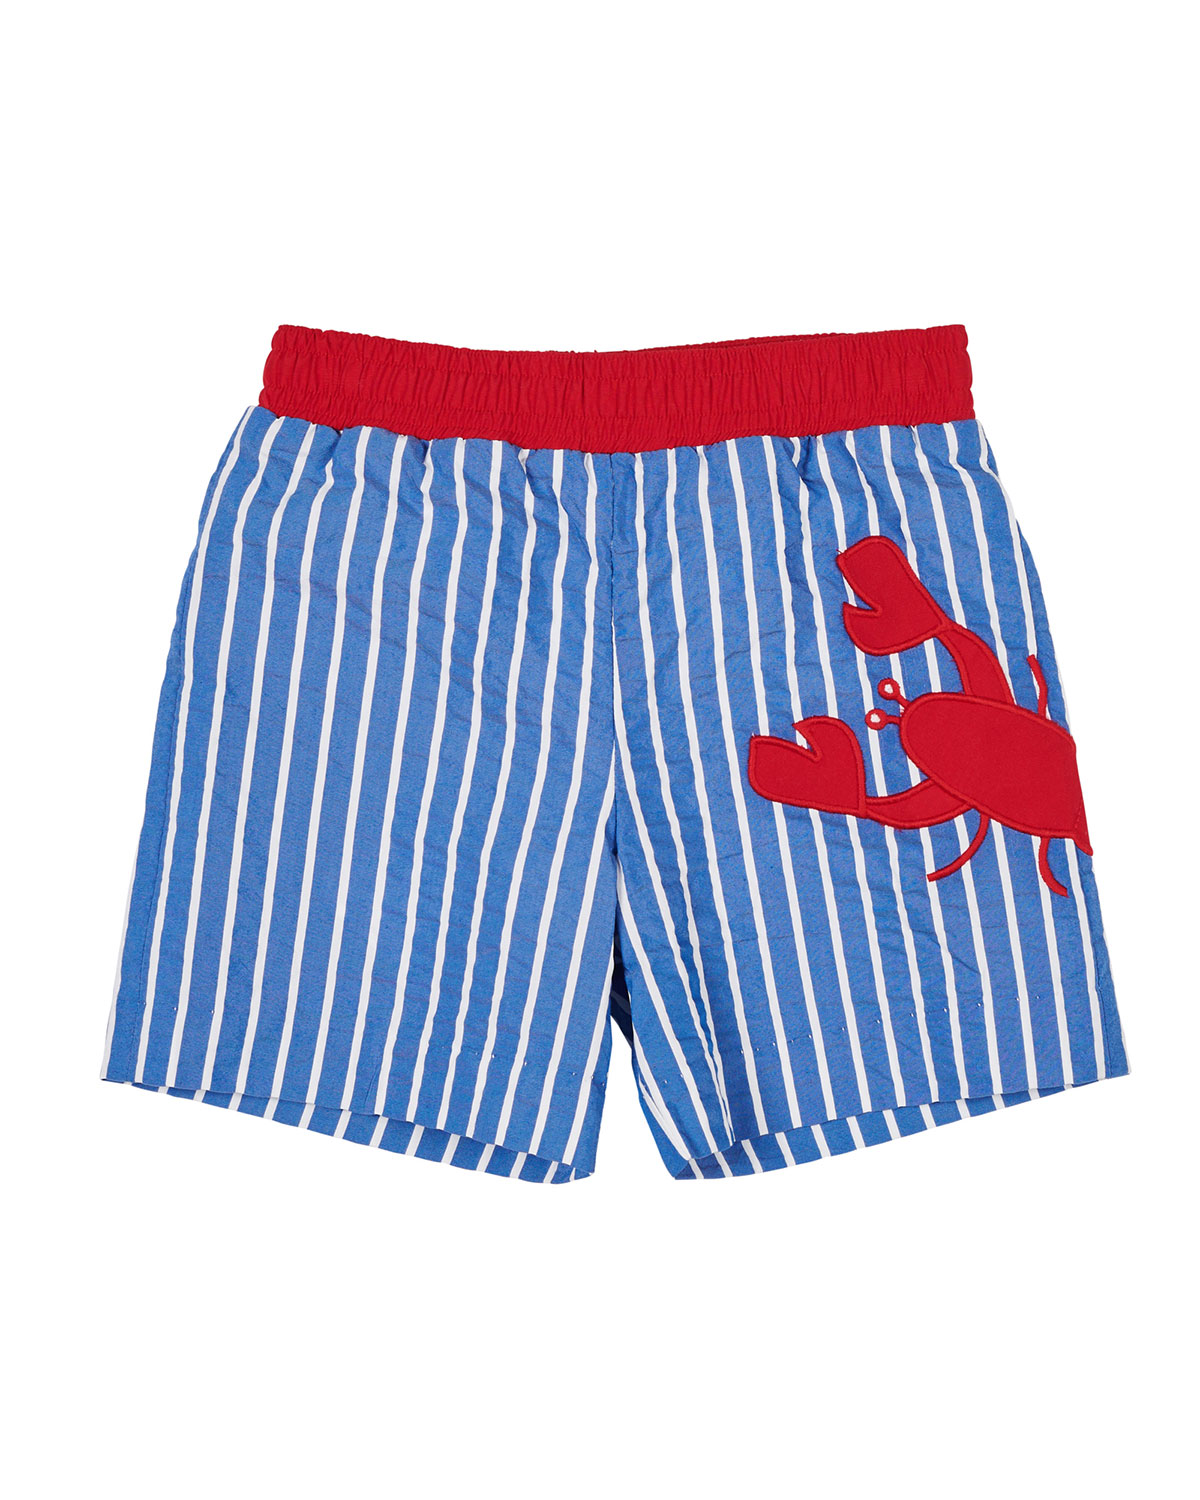 FLORENCE EISEMAN Striped Lobster Swim Trunks, Size 2-4 in Blue